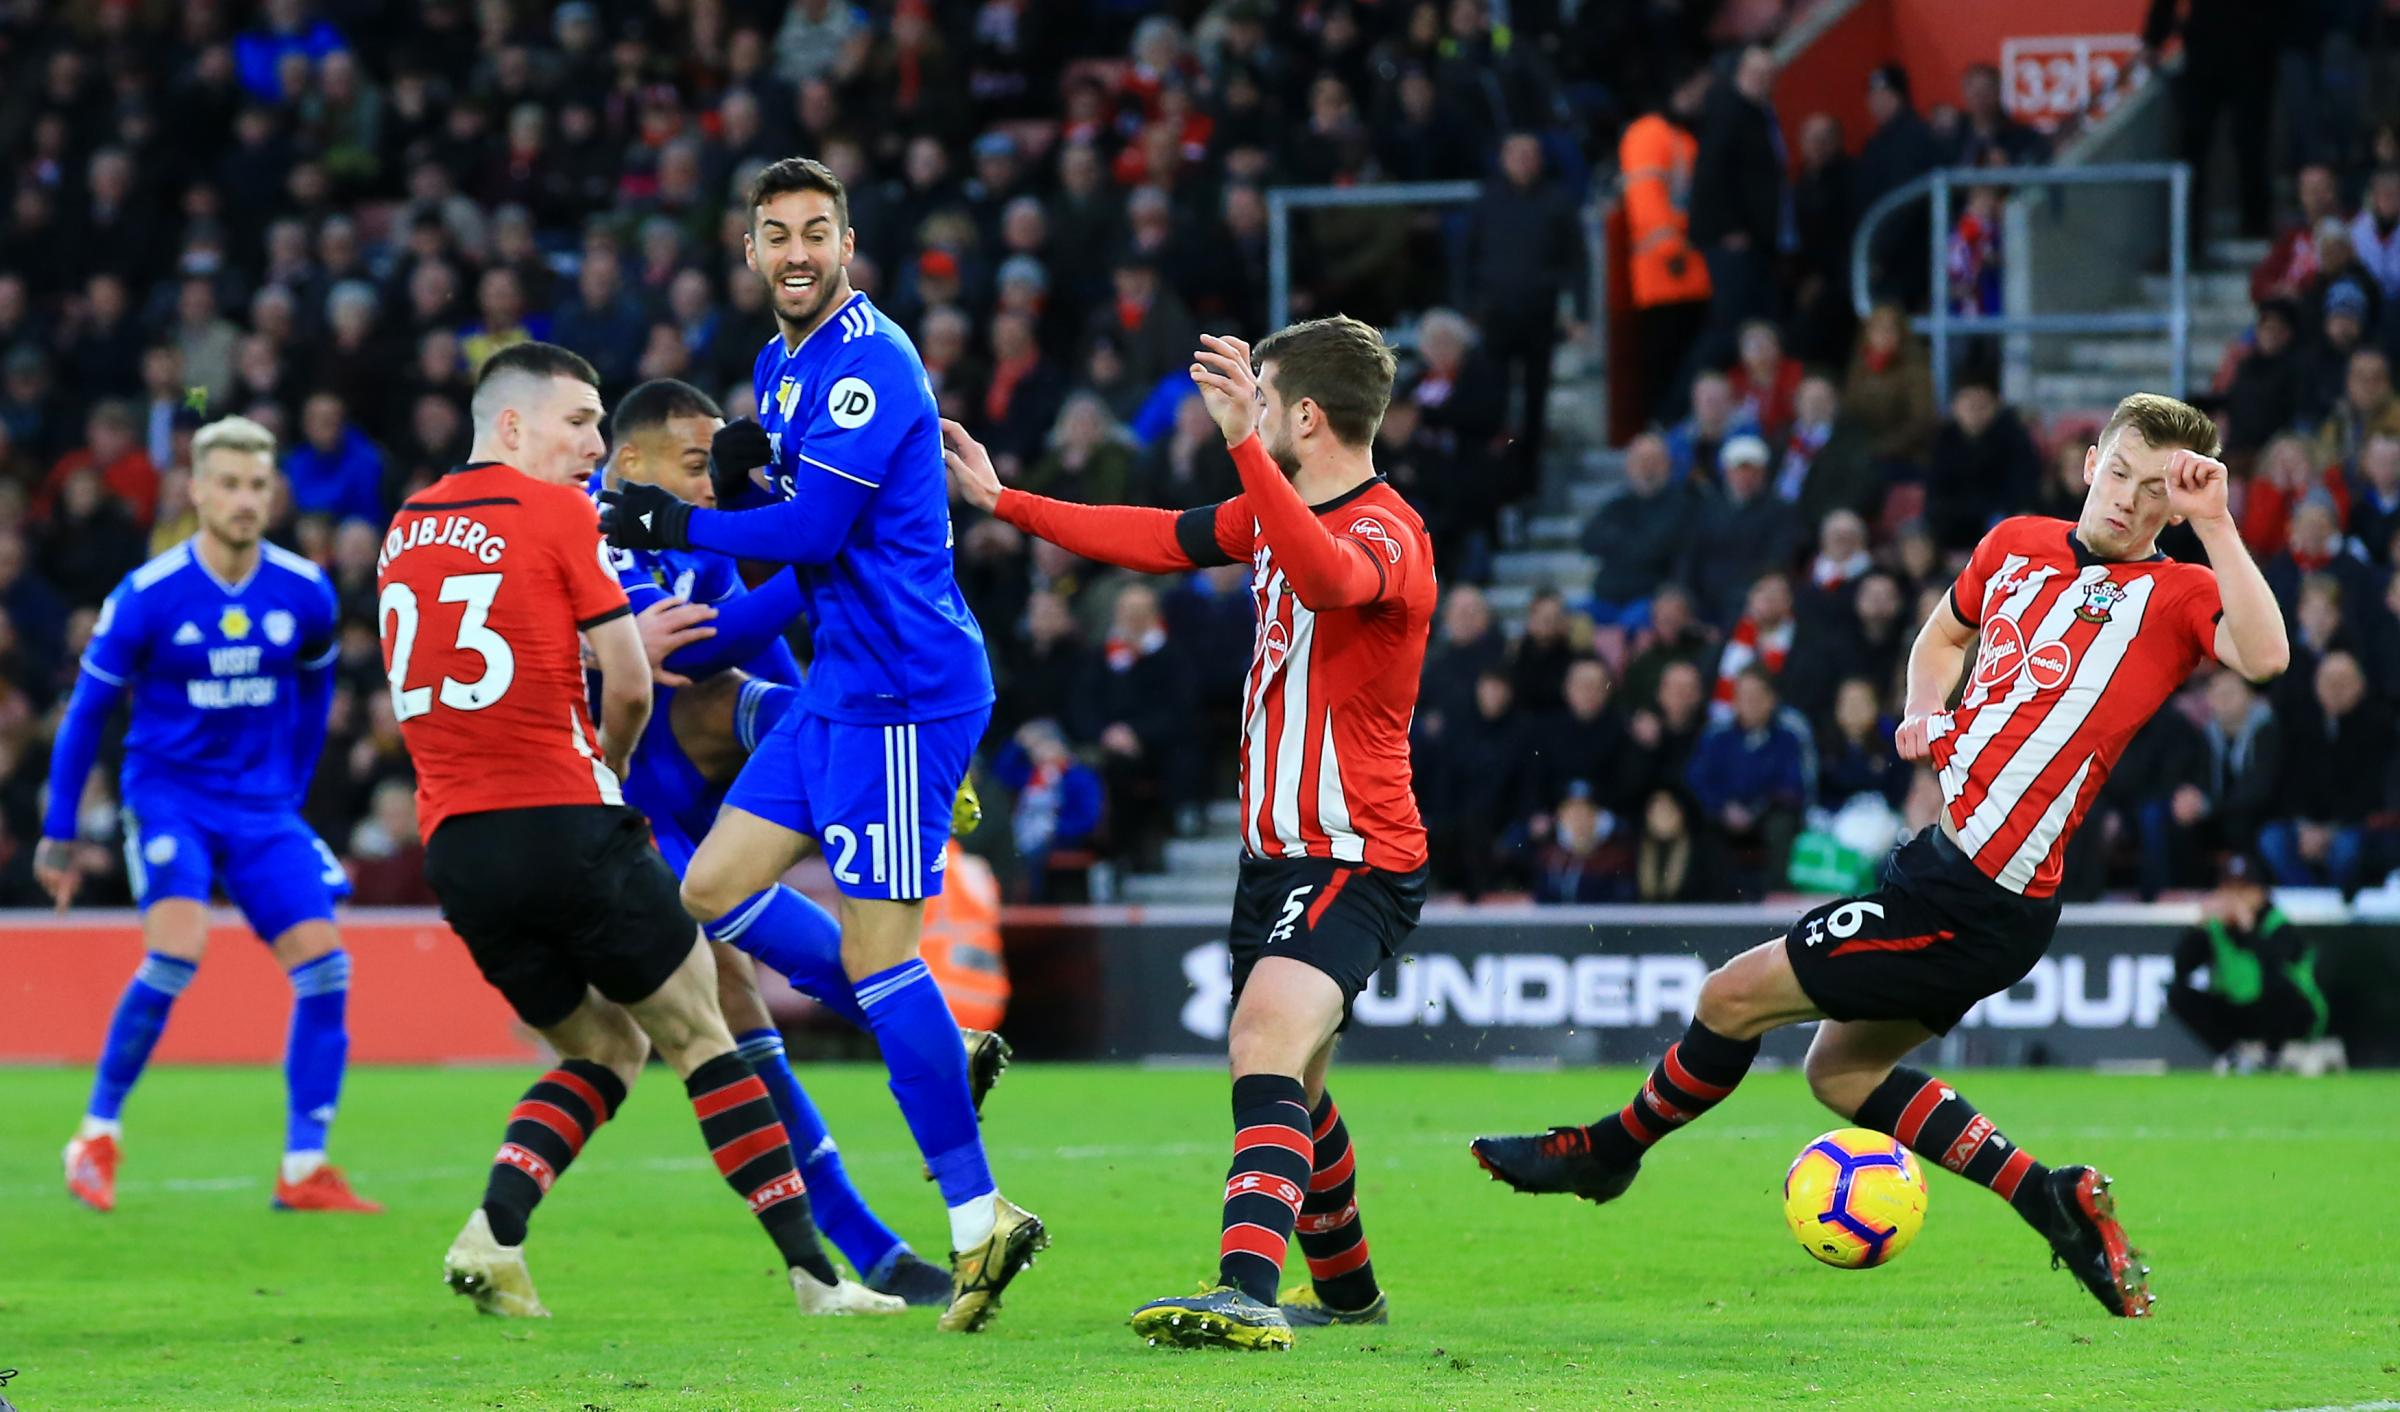 Ken Zohore nets a last-gasp winner for Cardiff